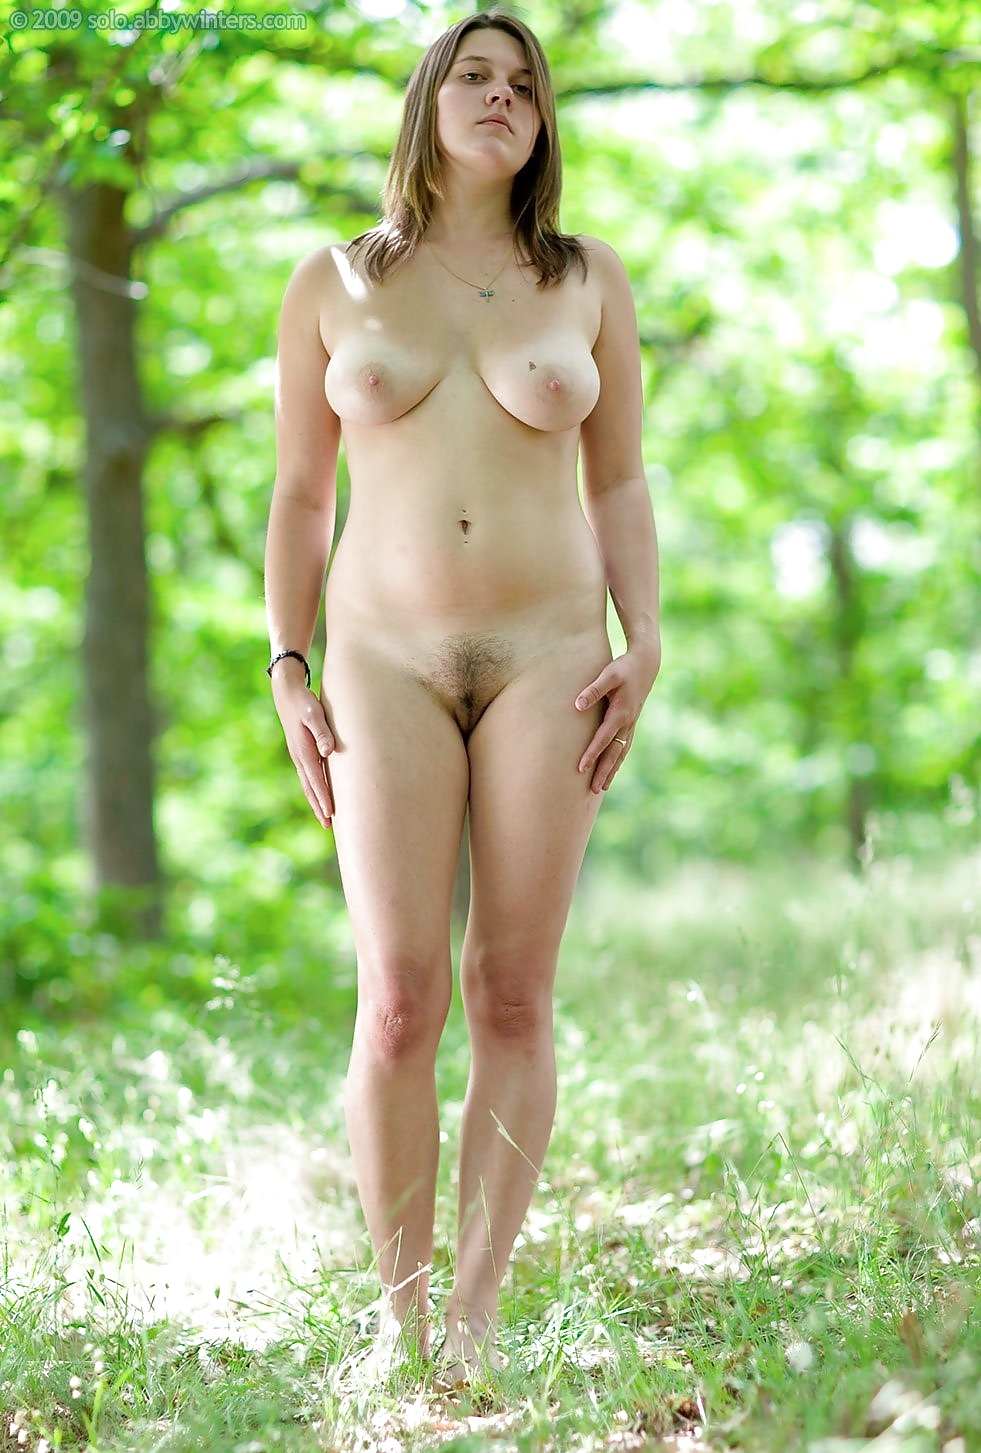 Amature Naked Girls Nature